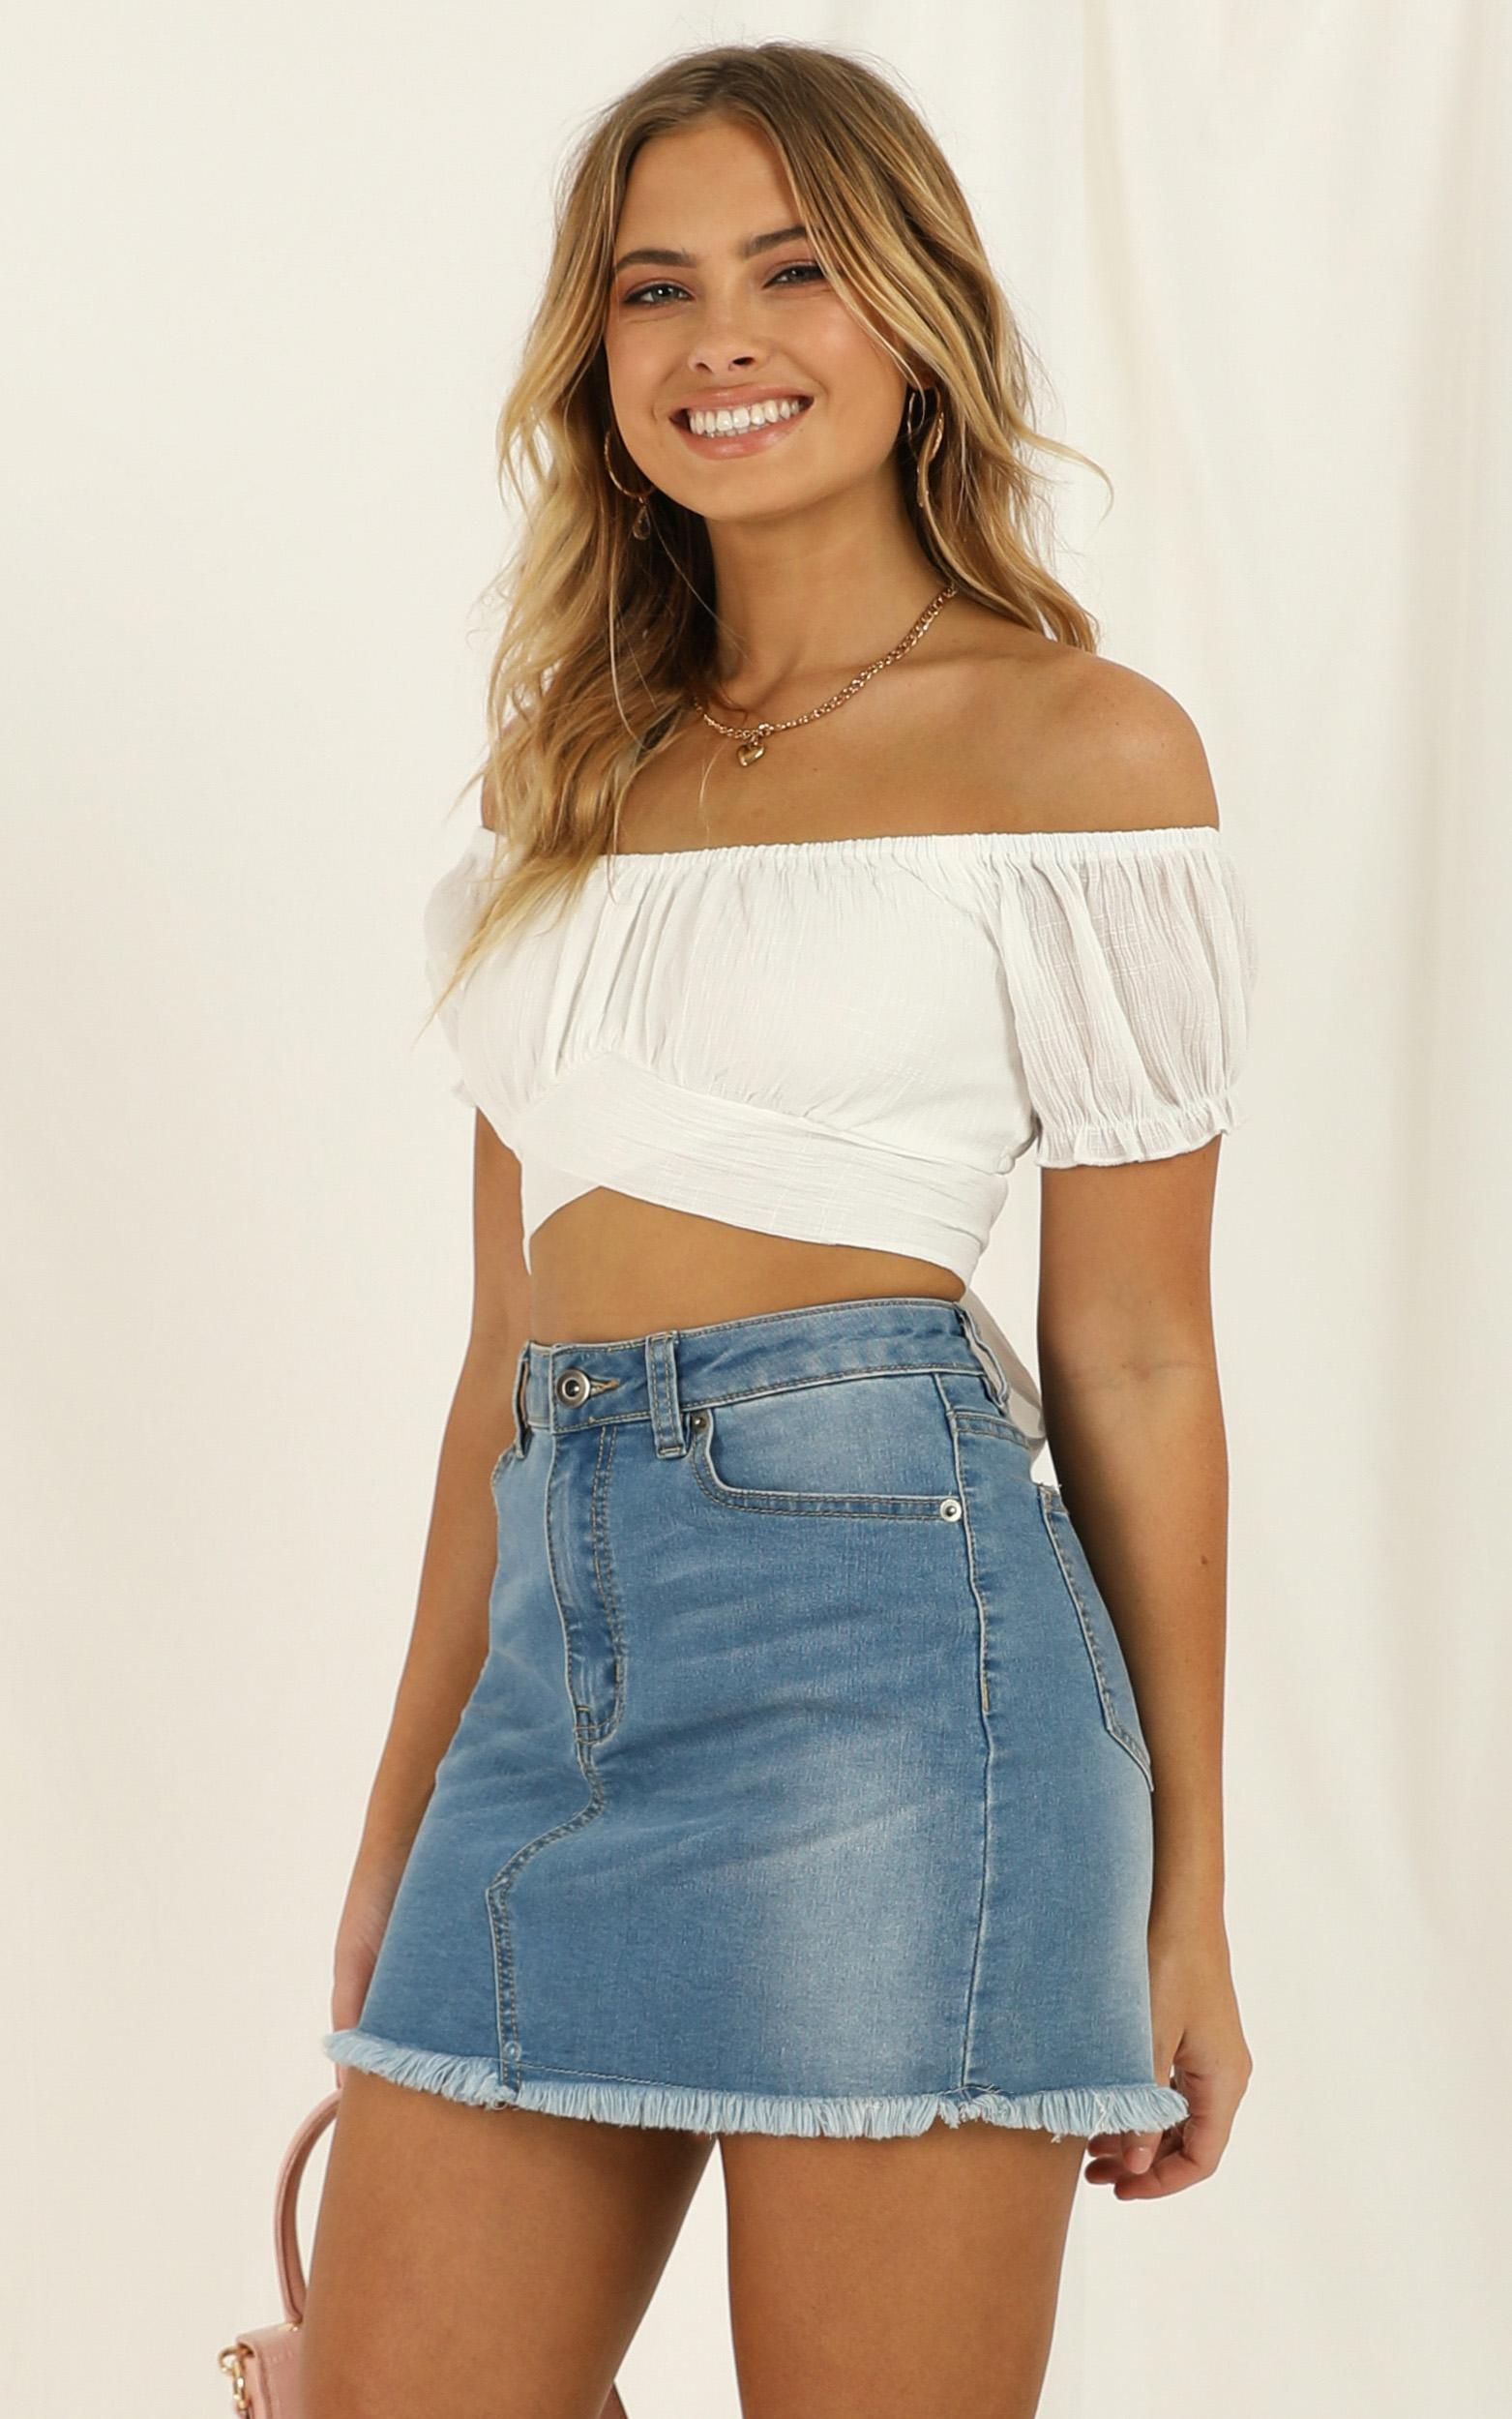 I Know You Top in white linen look - 20 (XXXXL), White, hi-res image number null